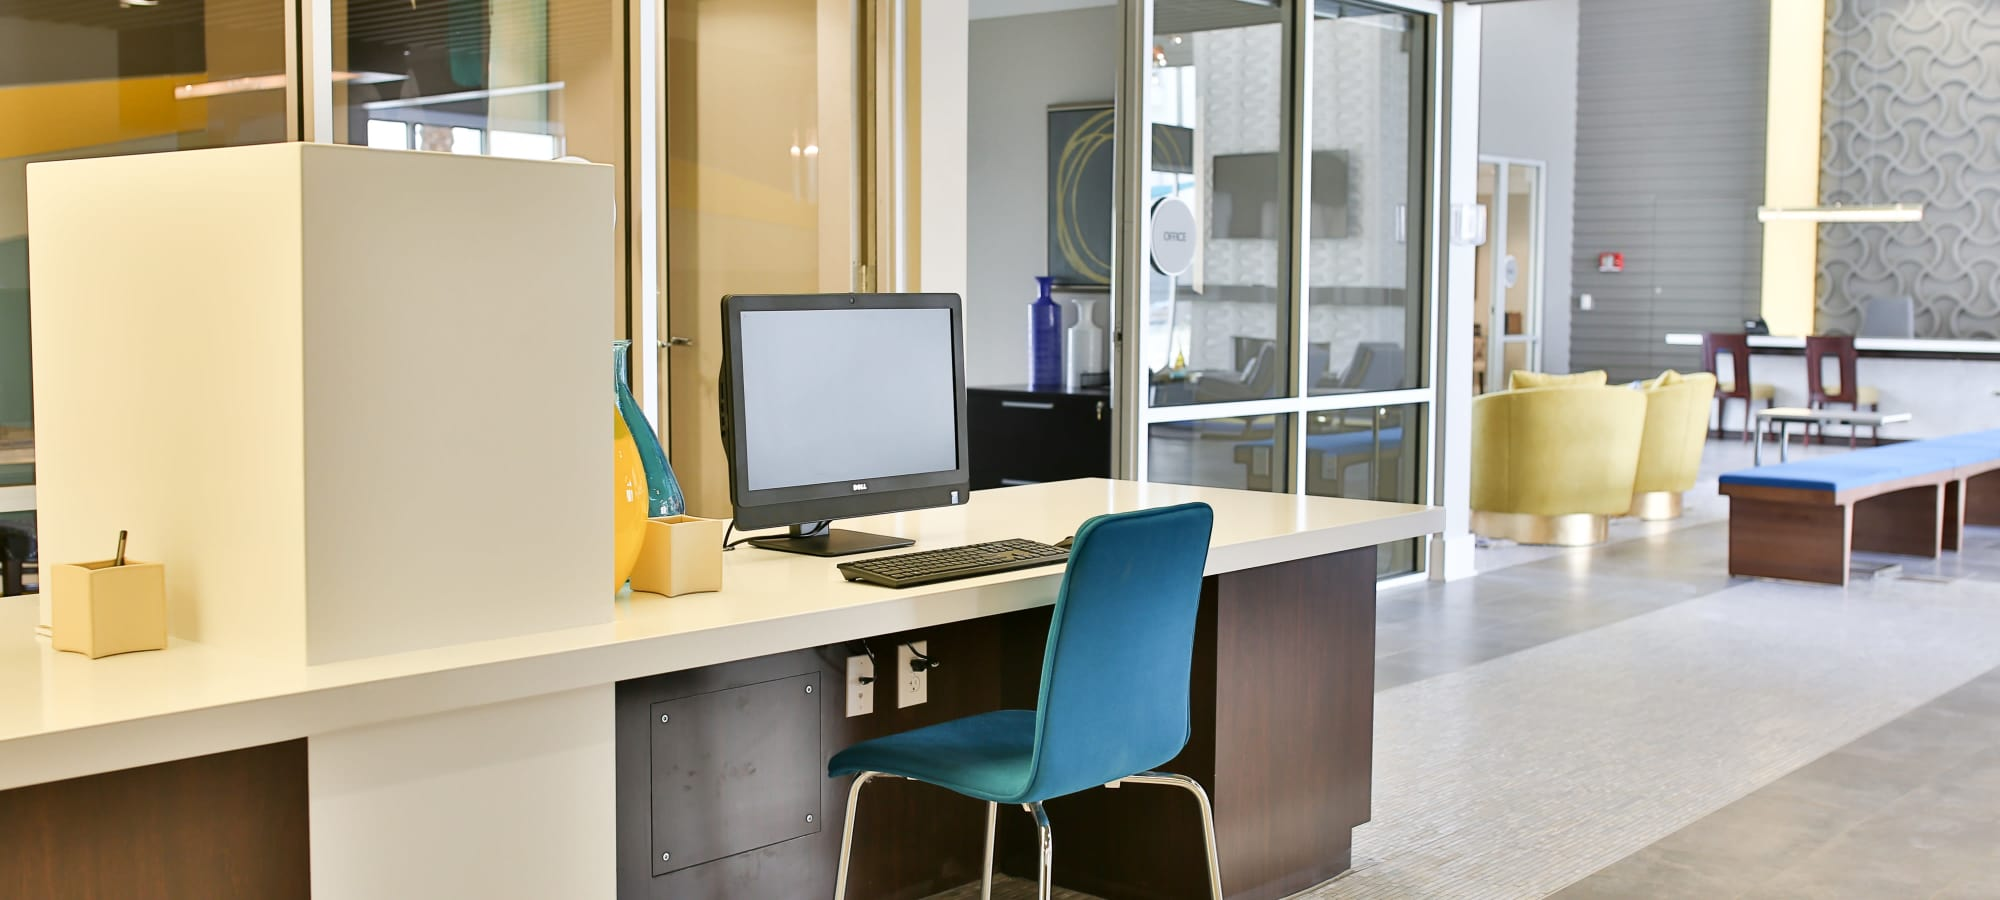 Business center with computers for resident use at Slate Scottsdale in Phoenix, Arizona